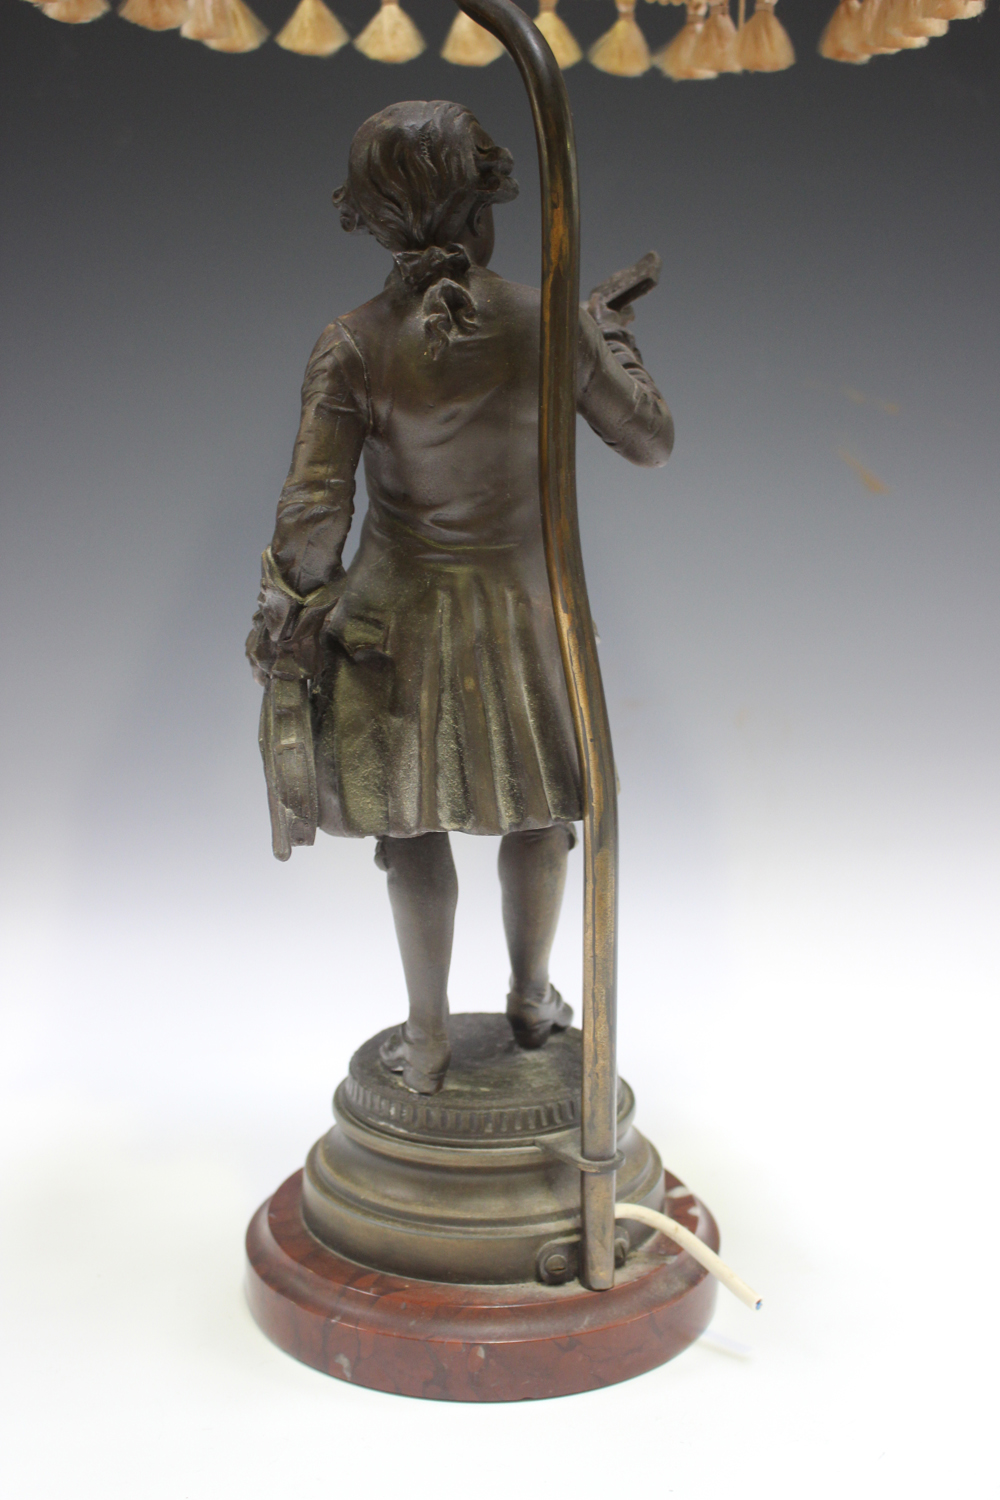 An early 20th century French cast spelter figural table lamp, modelled after Emile Bruchon as the - Image 2 of 4